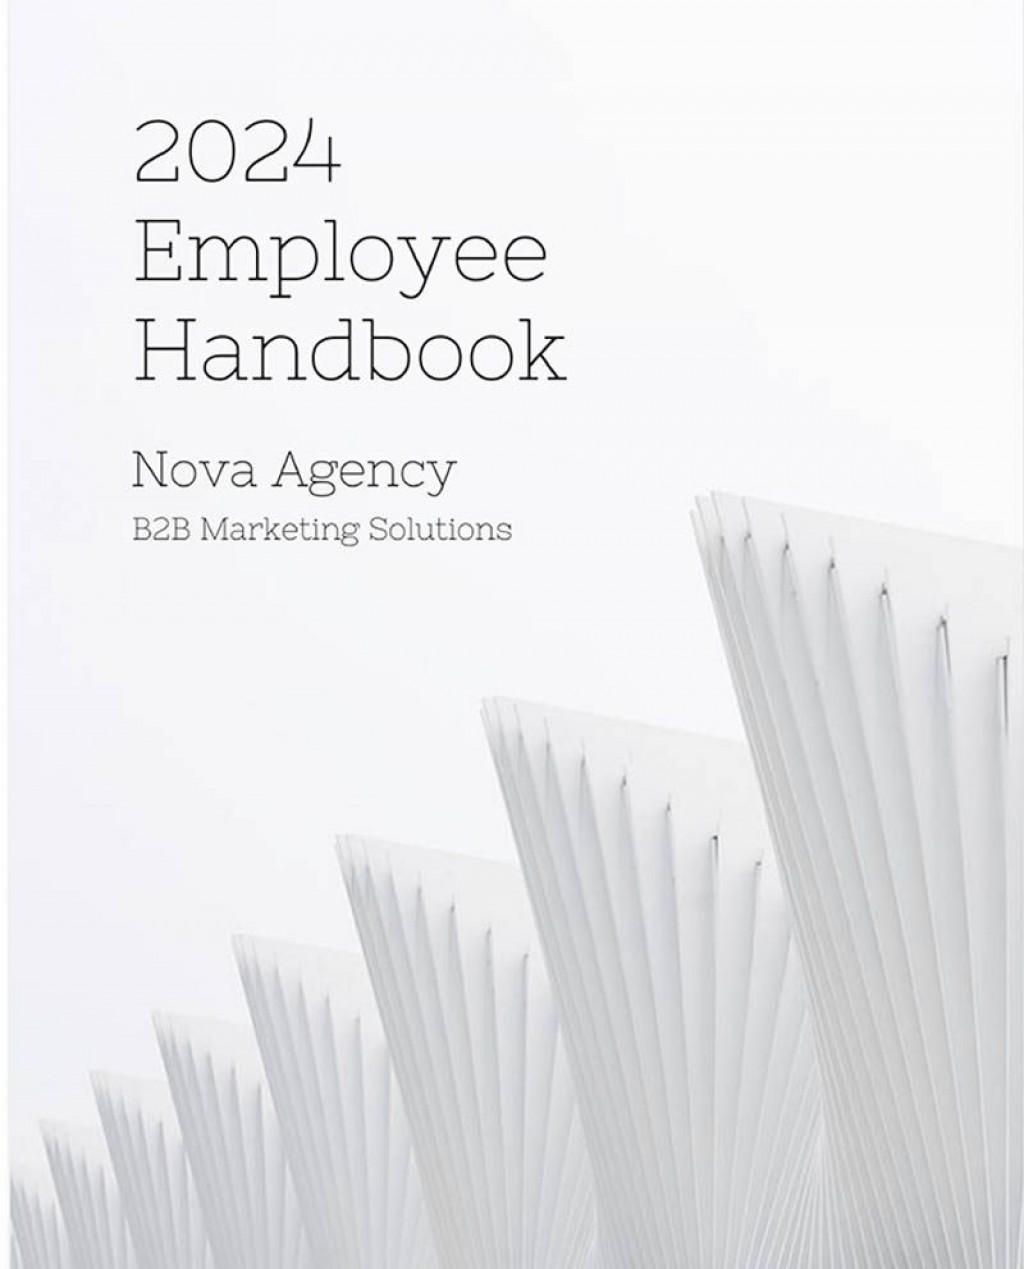 006 Excellent Free Employee Handbook Template Word Image  Sample In Training ManualLarge